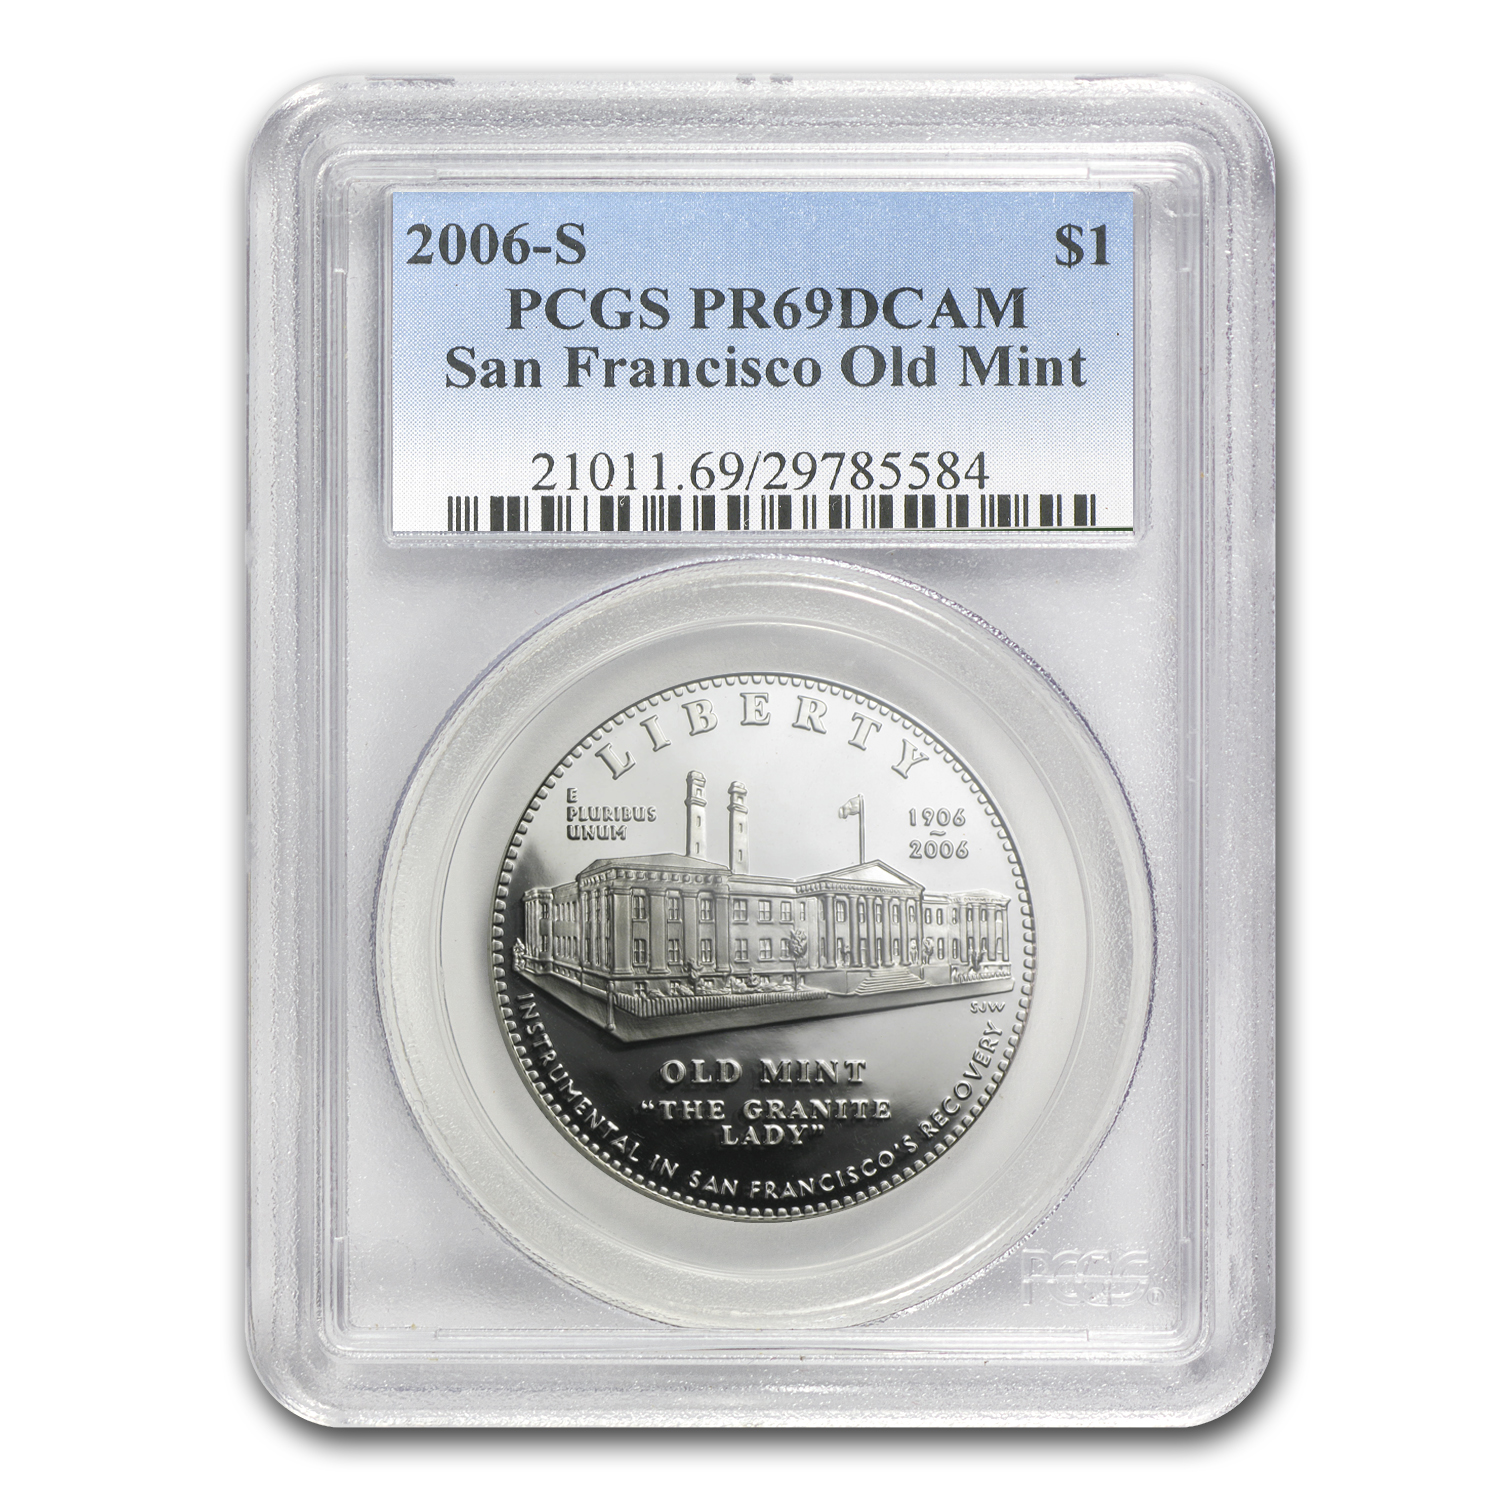 2006-S San Francisco Old Mint $1 Silver Commem PR-69 PCGS